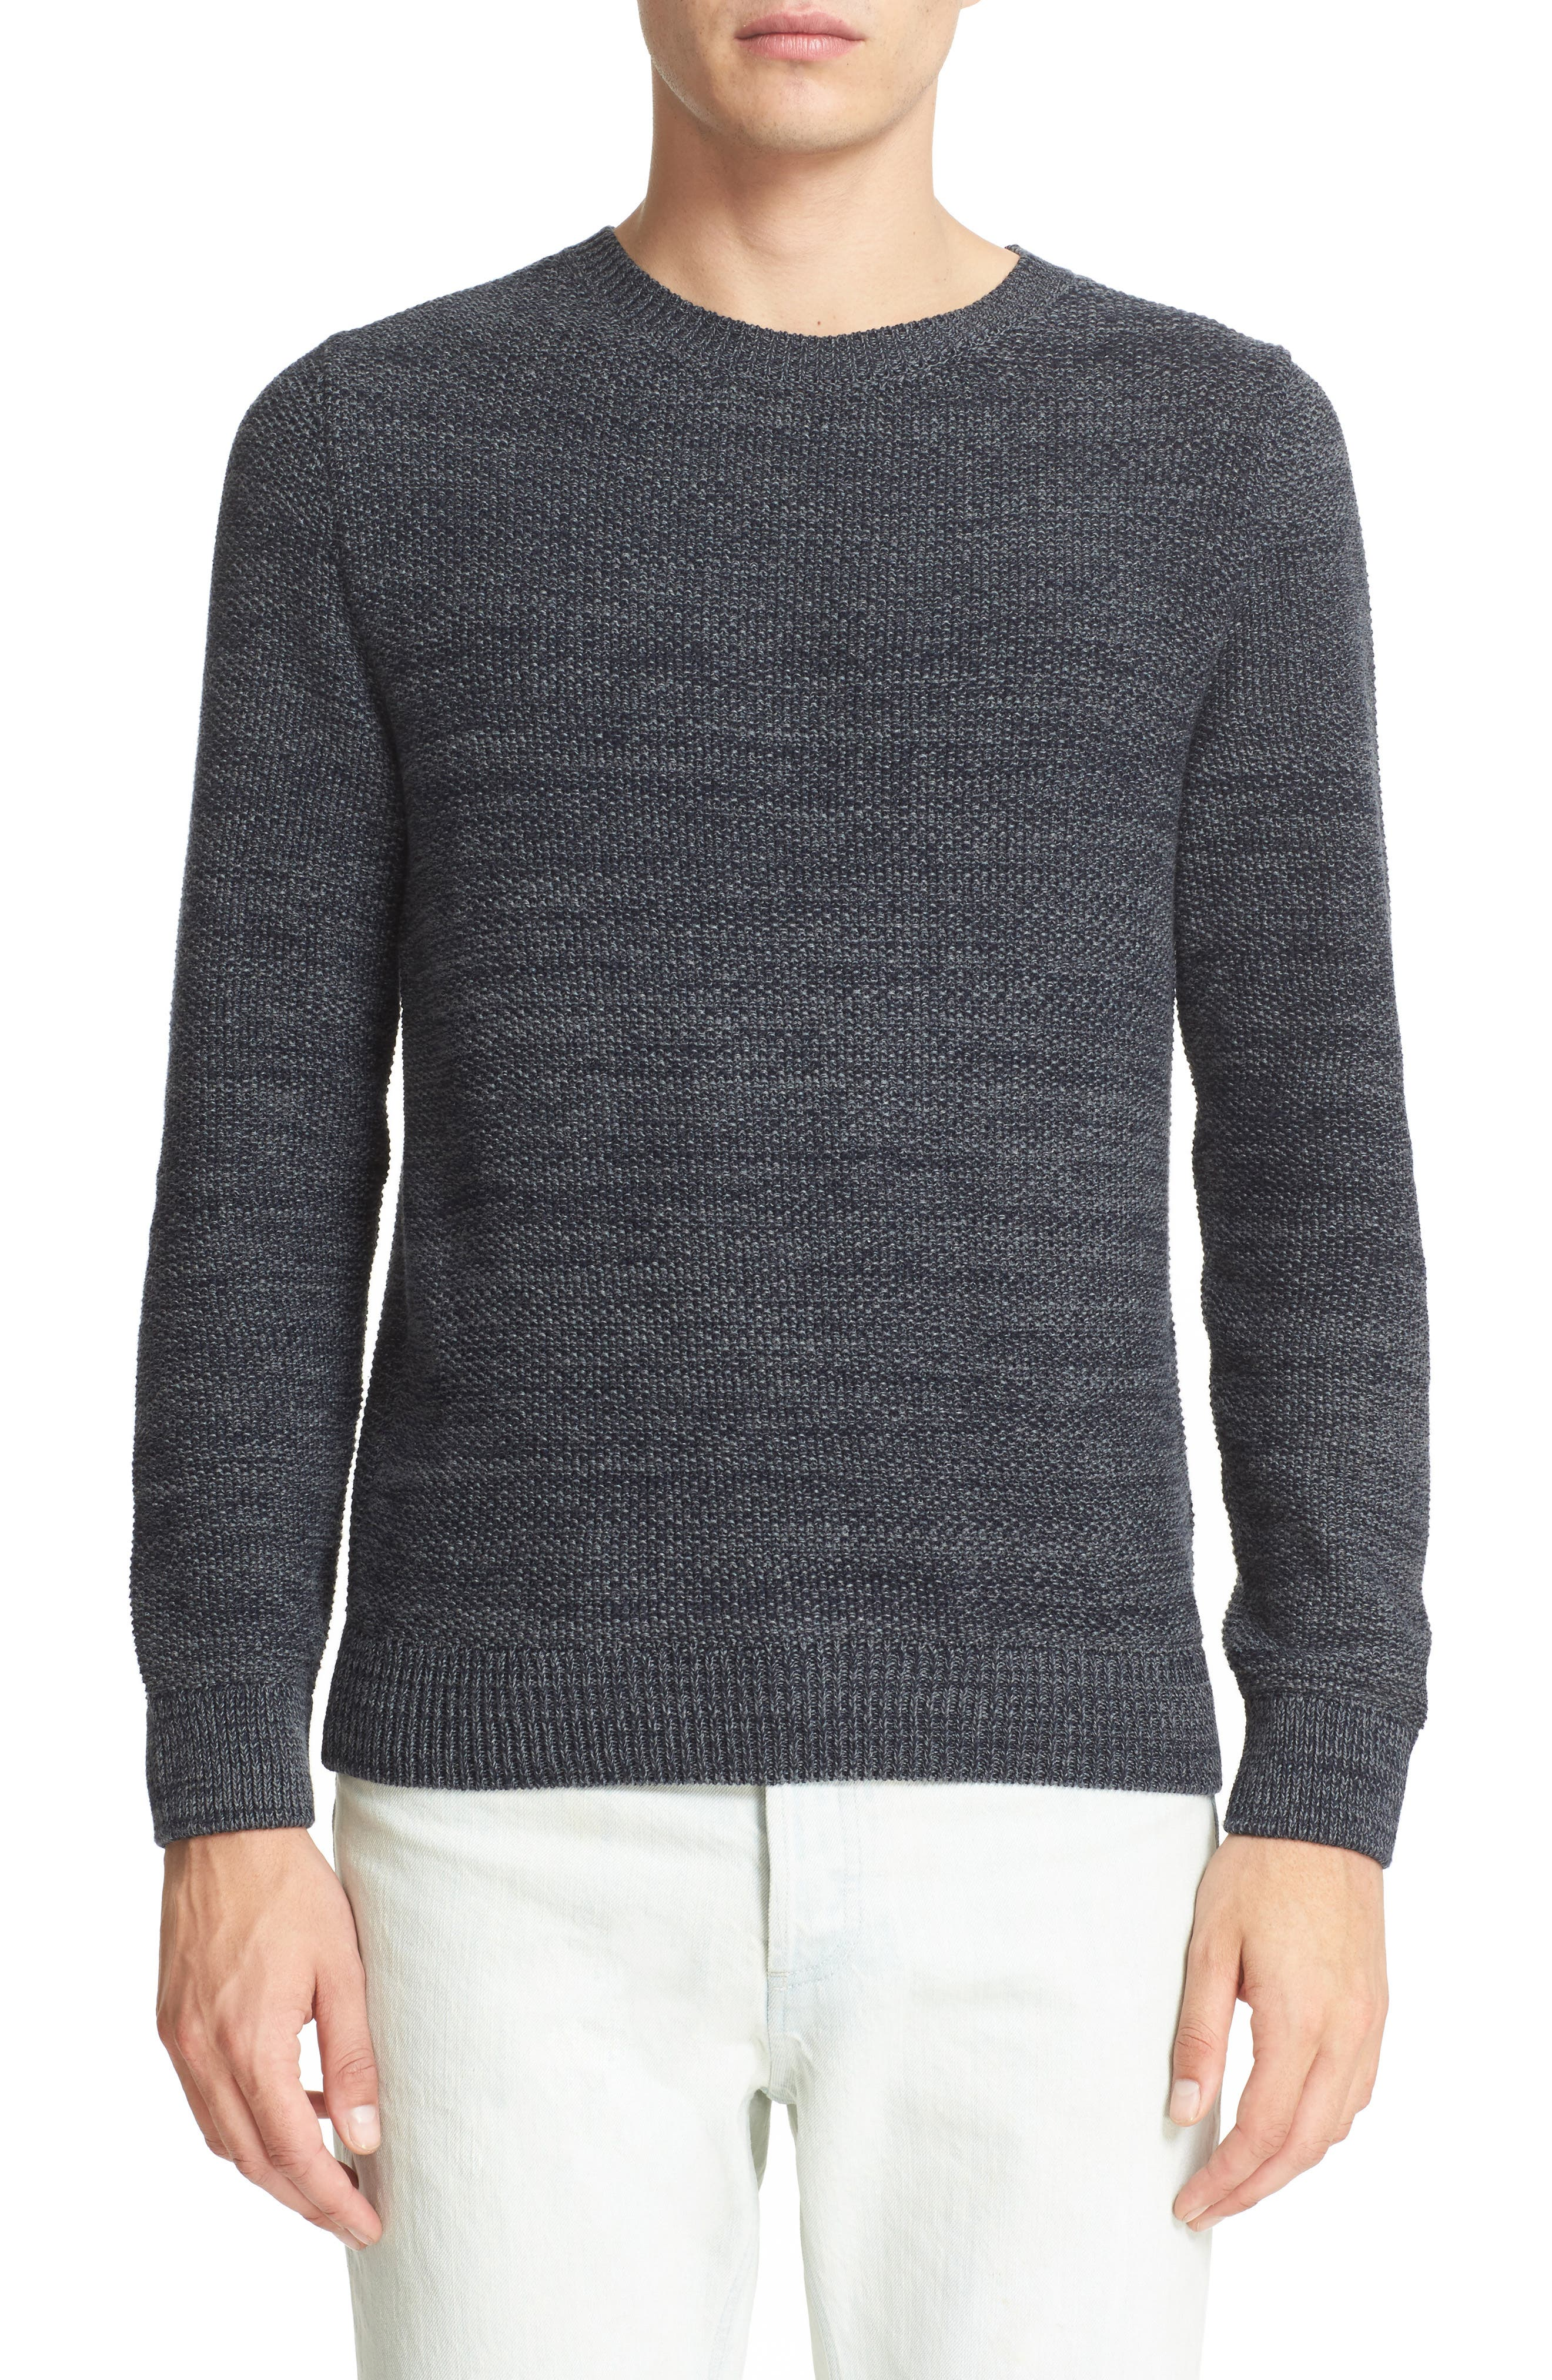 A.P.C. Murrow Cotton Crewneck Sweater